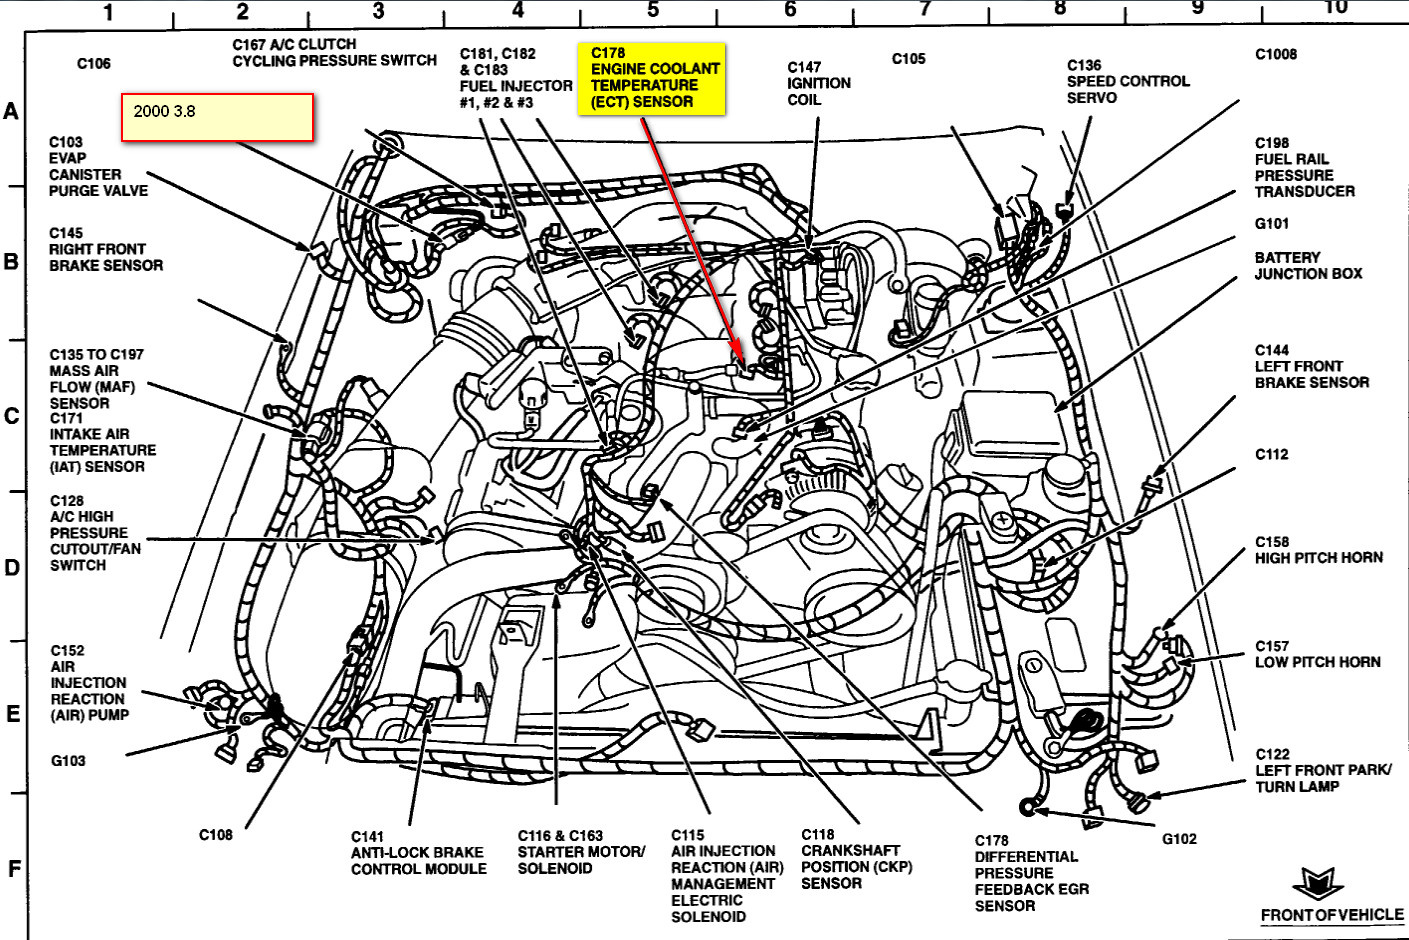 hight resolution of 2011 ford mustang v6 engine diagram wiring diagram name 2011 mustang 5 0 engine diagram 2011 mustang engine diagram